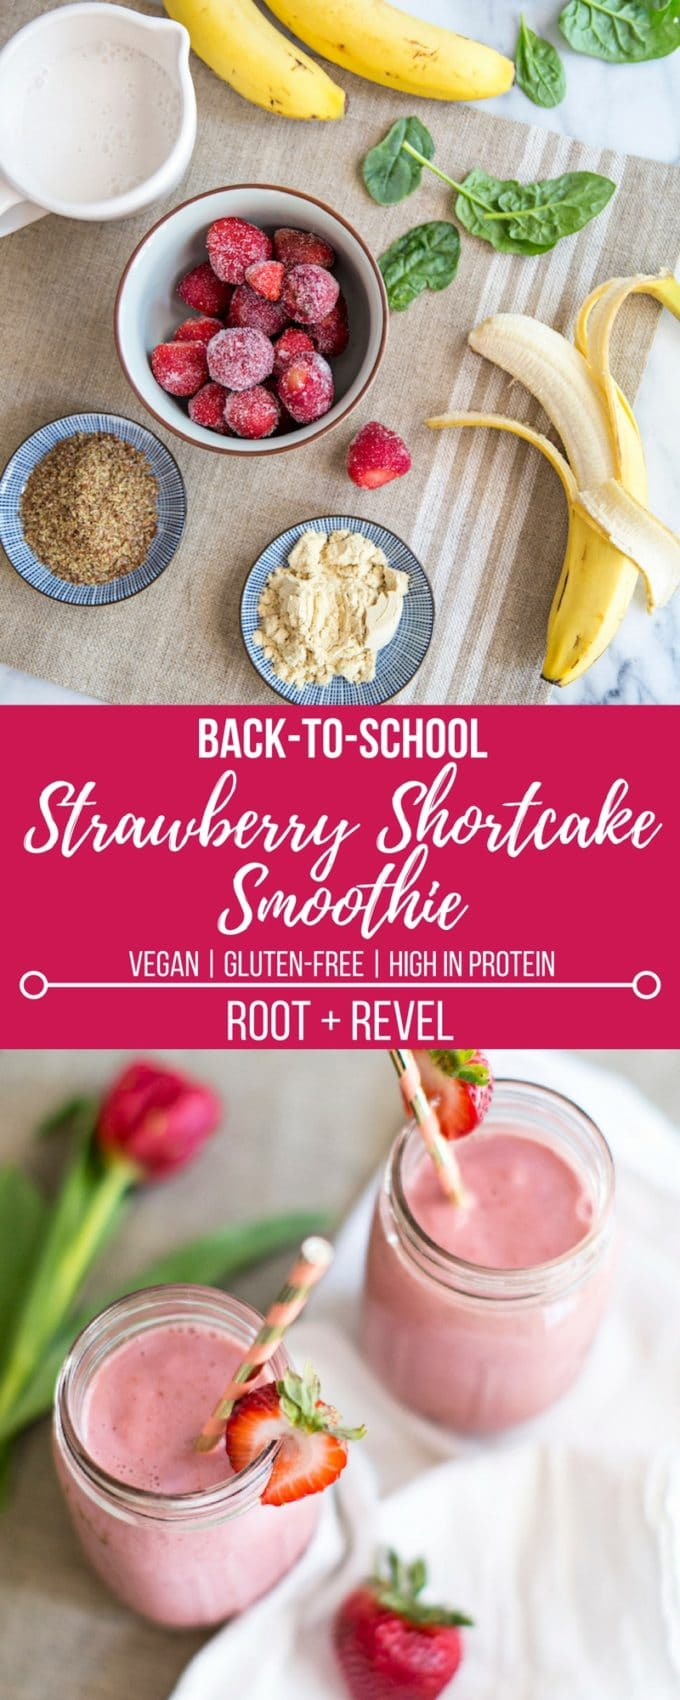 Get the family excited for back-to-school with this vegan strawberry shortcake smoothie. Though it tastes exactly like the delicious dessert, this healthy breakfast smoothie is dairy-free (no yogurt), low-fat and high in protein!